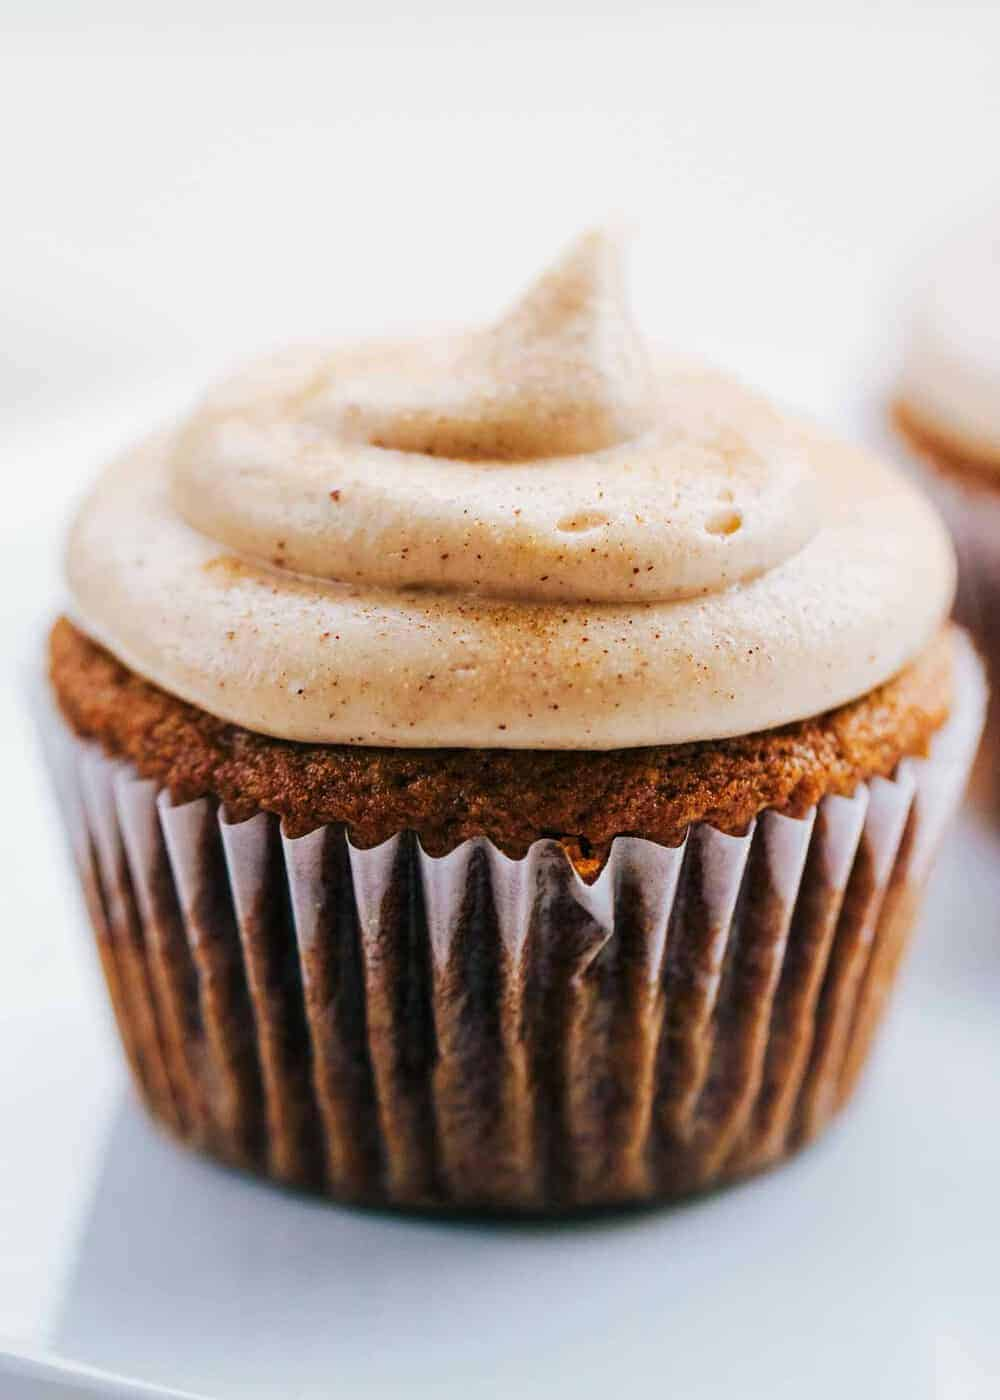 A close up of a churro cupcake